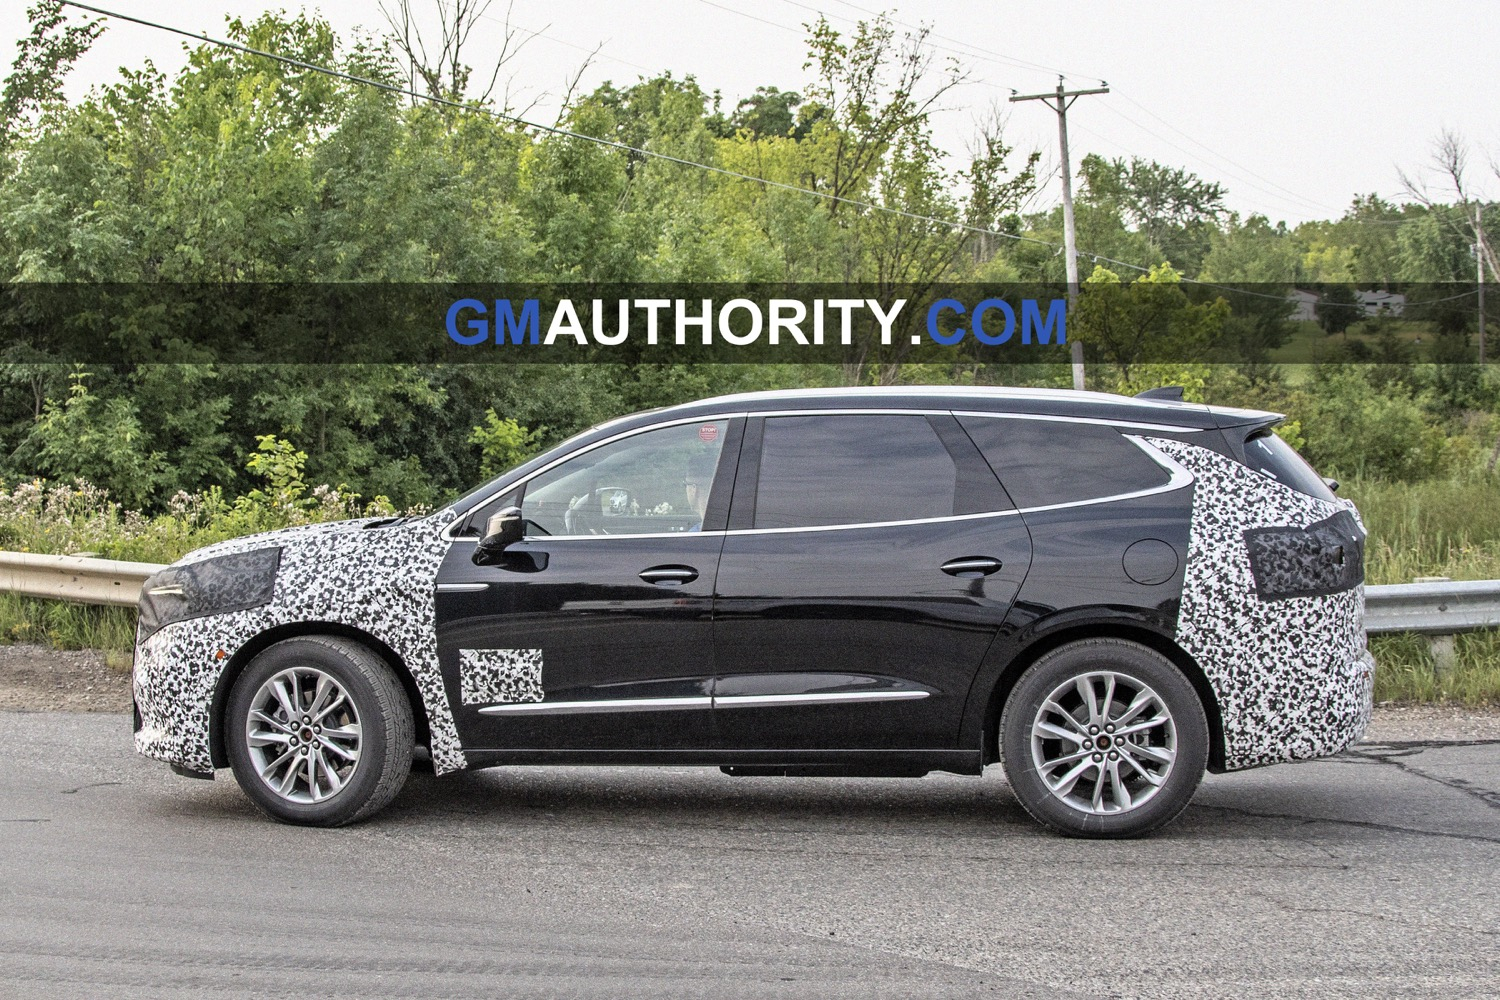 Buick Enclave Refresh Pushed Back To 2022 | Gm Authority 2022 Buick Enclave Avenir Standard Features, Used, Reviews